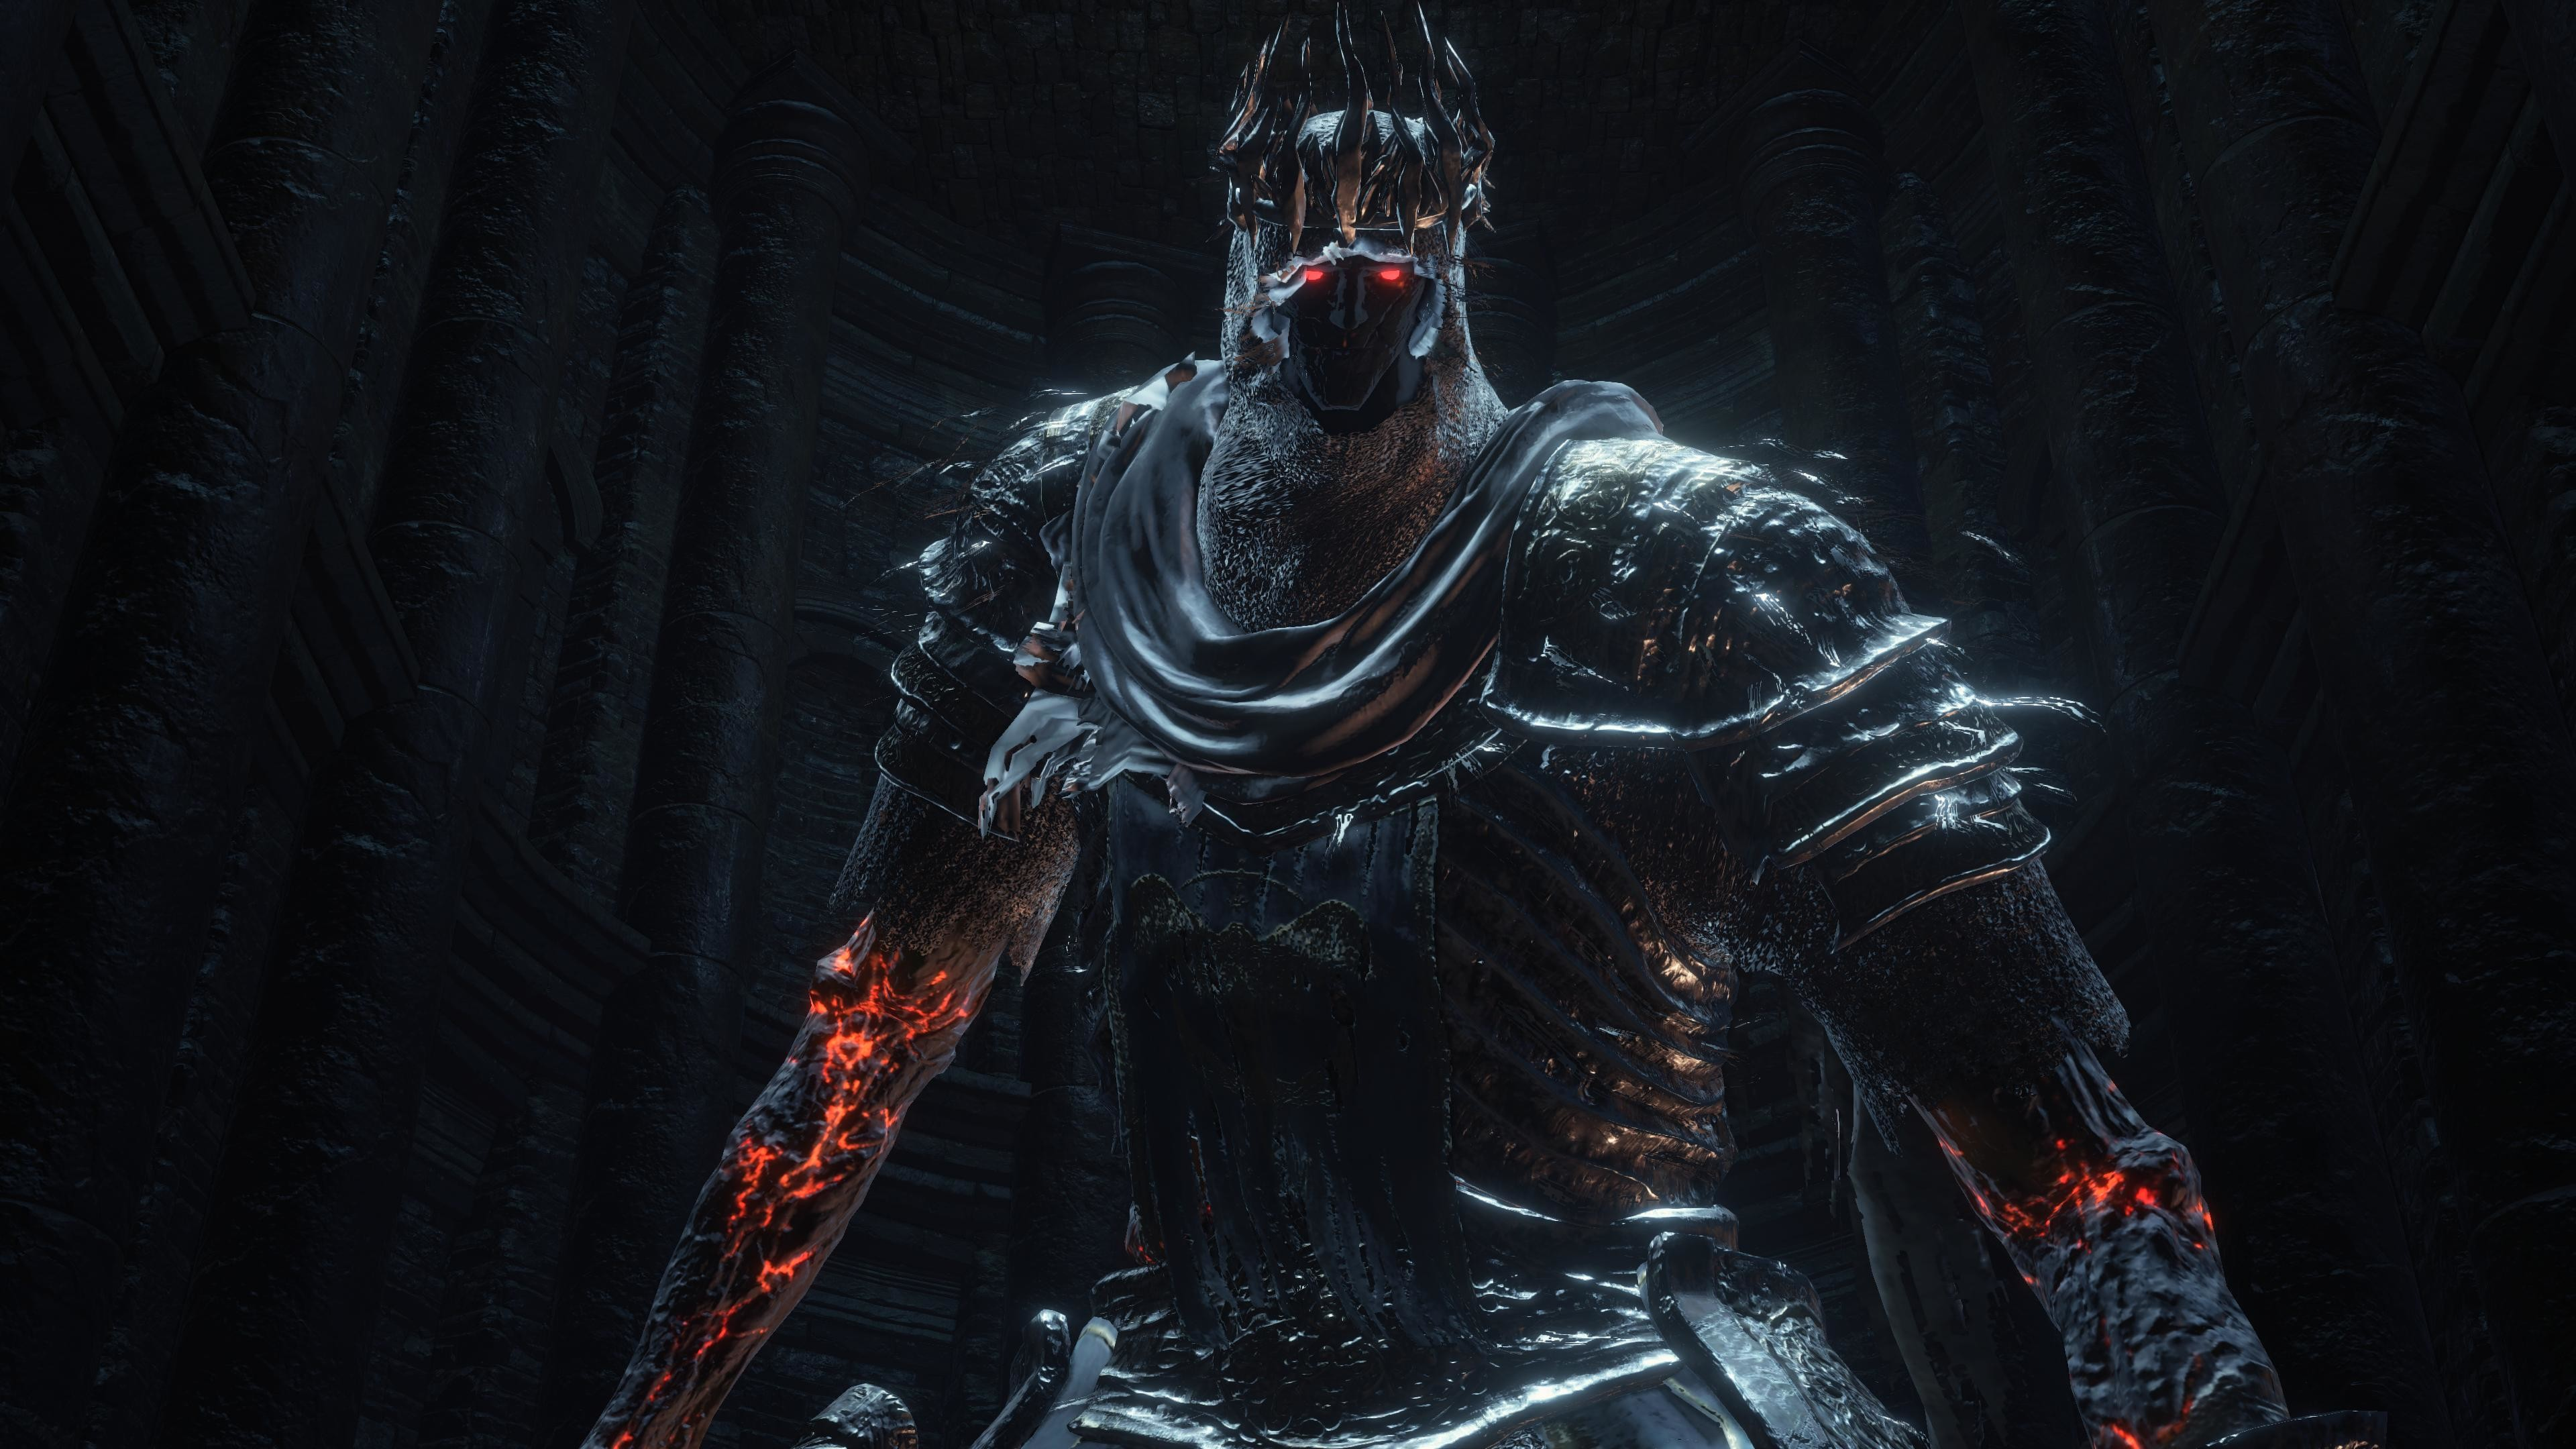 … Dark Souls 3 4K Pic 29 Yhorm the Giant 2 by user619